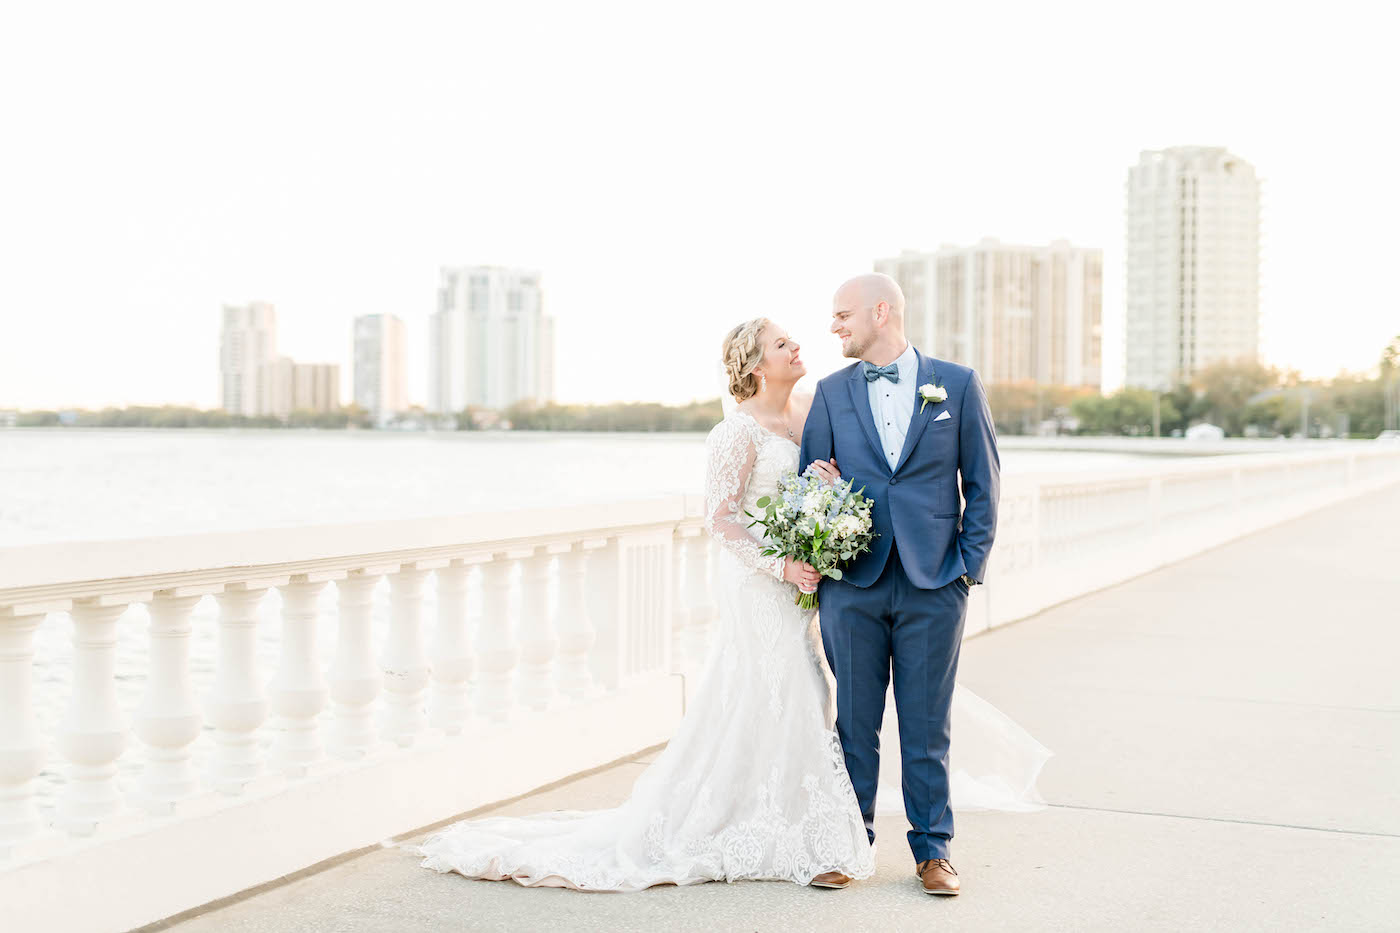 Bride and Groom Outdoor Portraits on Bayshore Boulevard Tampa   Ivory Lace Long Sleeve V Neck Bridal Gown and Groom in Blue Suit with Bow Tie   Blue and White Bridal Bouquet